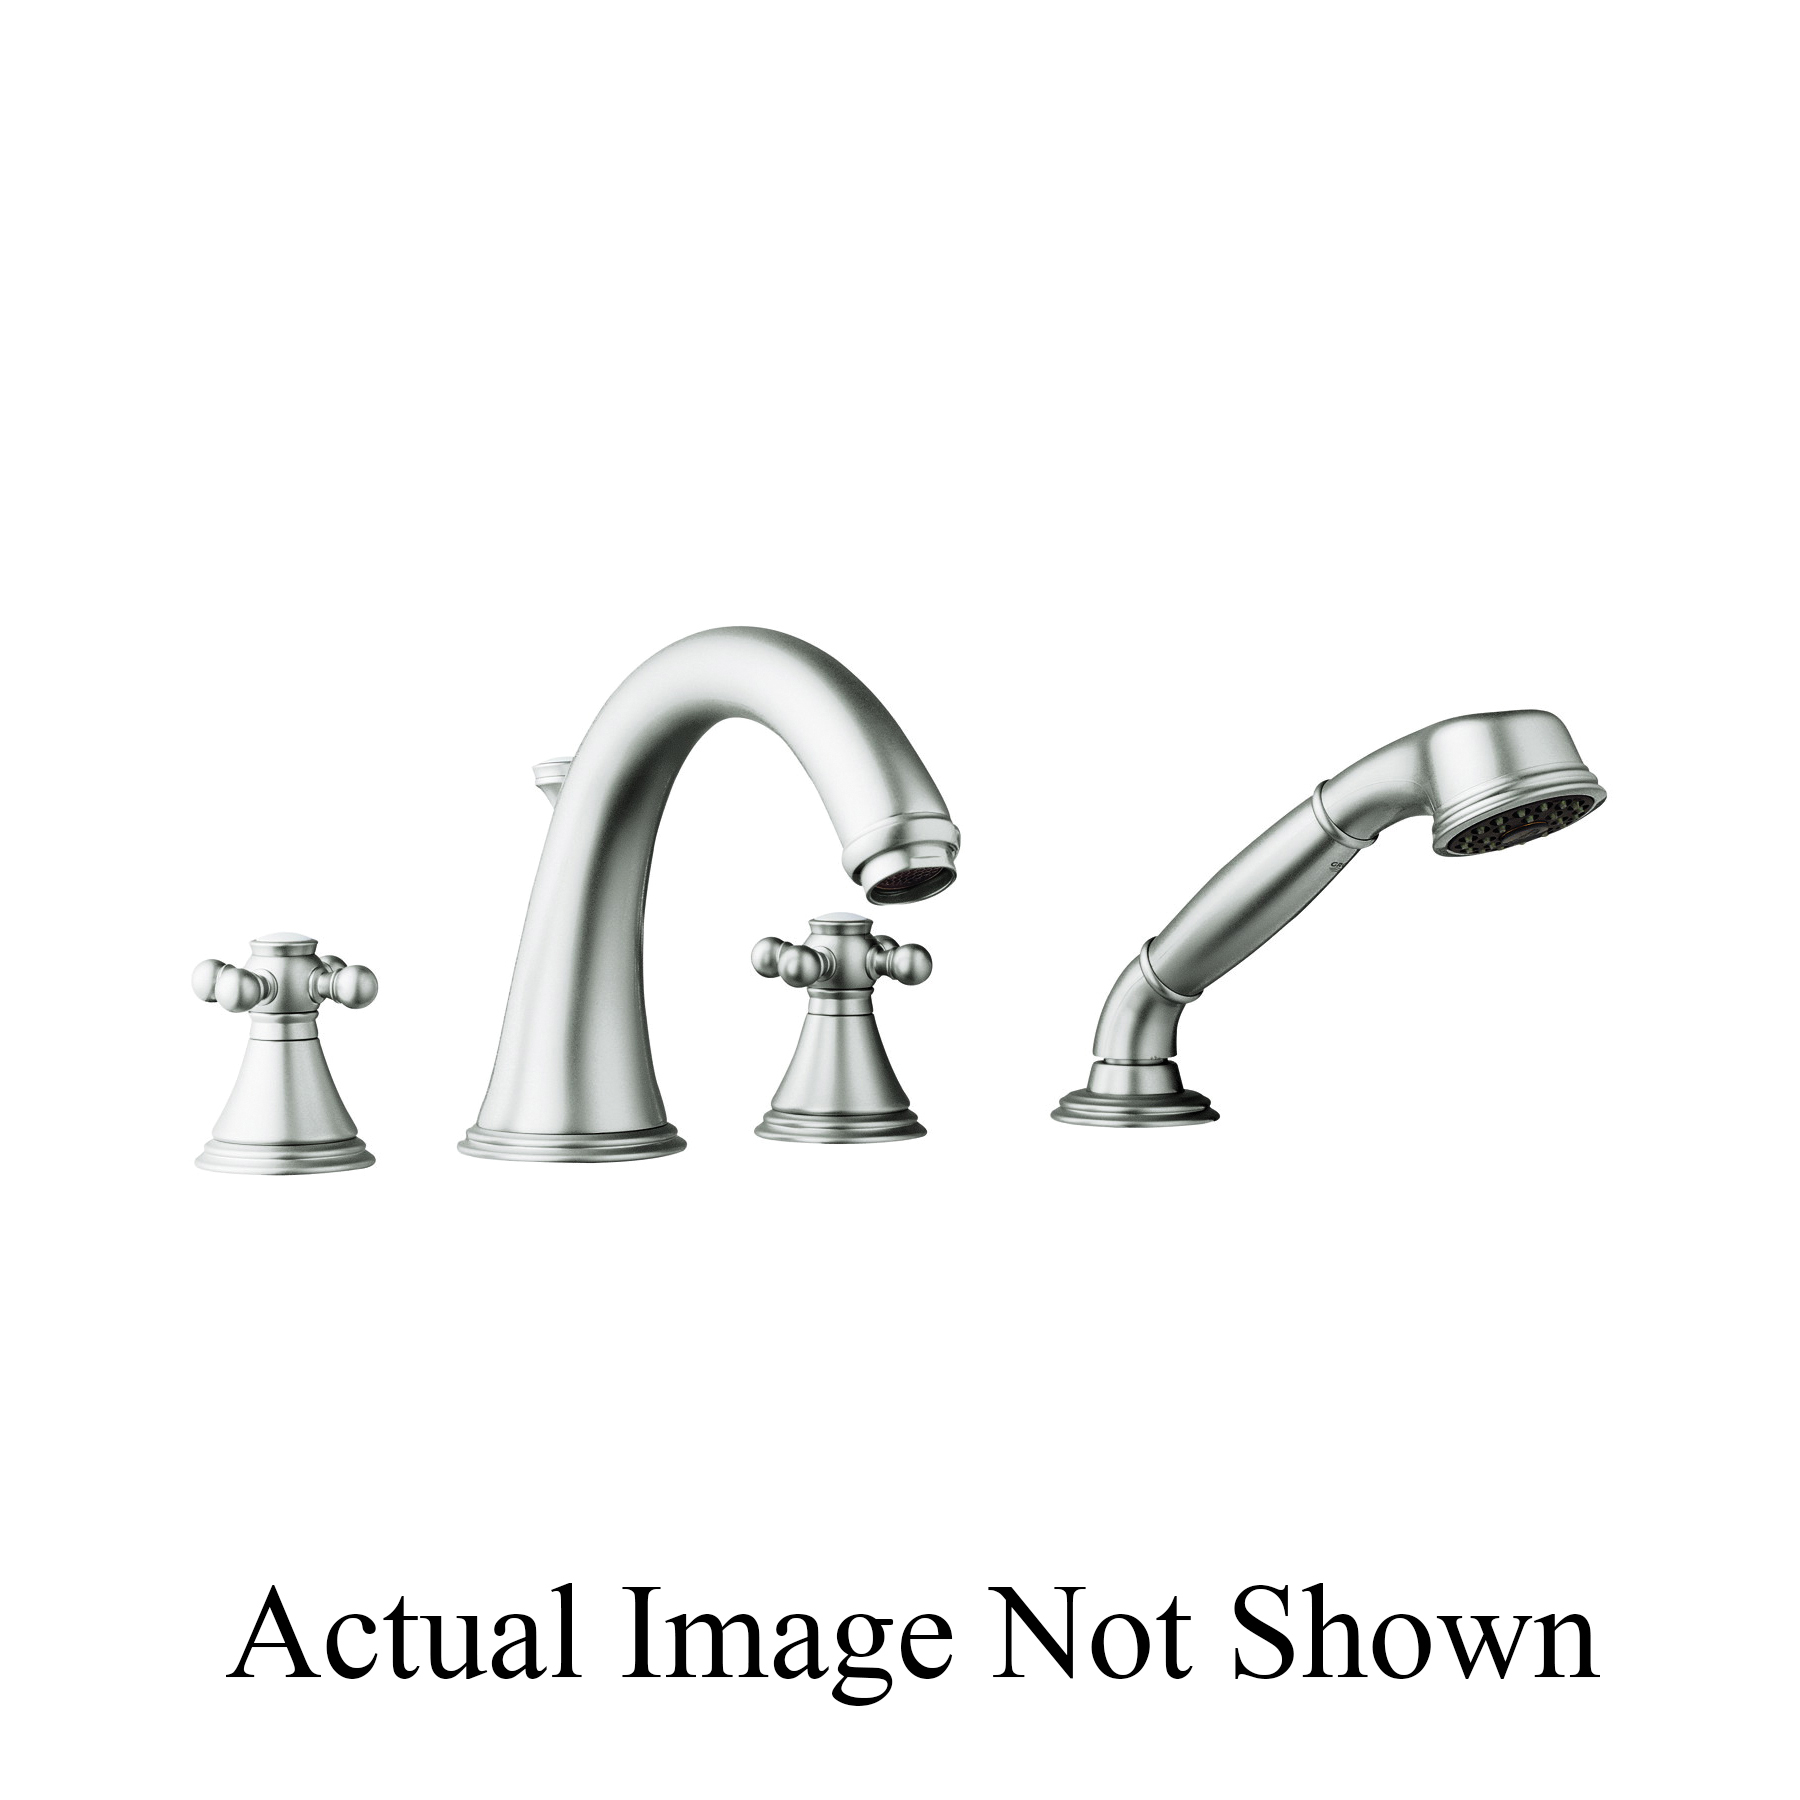 Consolidated Supply Co Grohe 25506en0 Geneva Roman